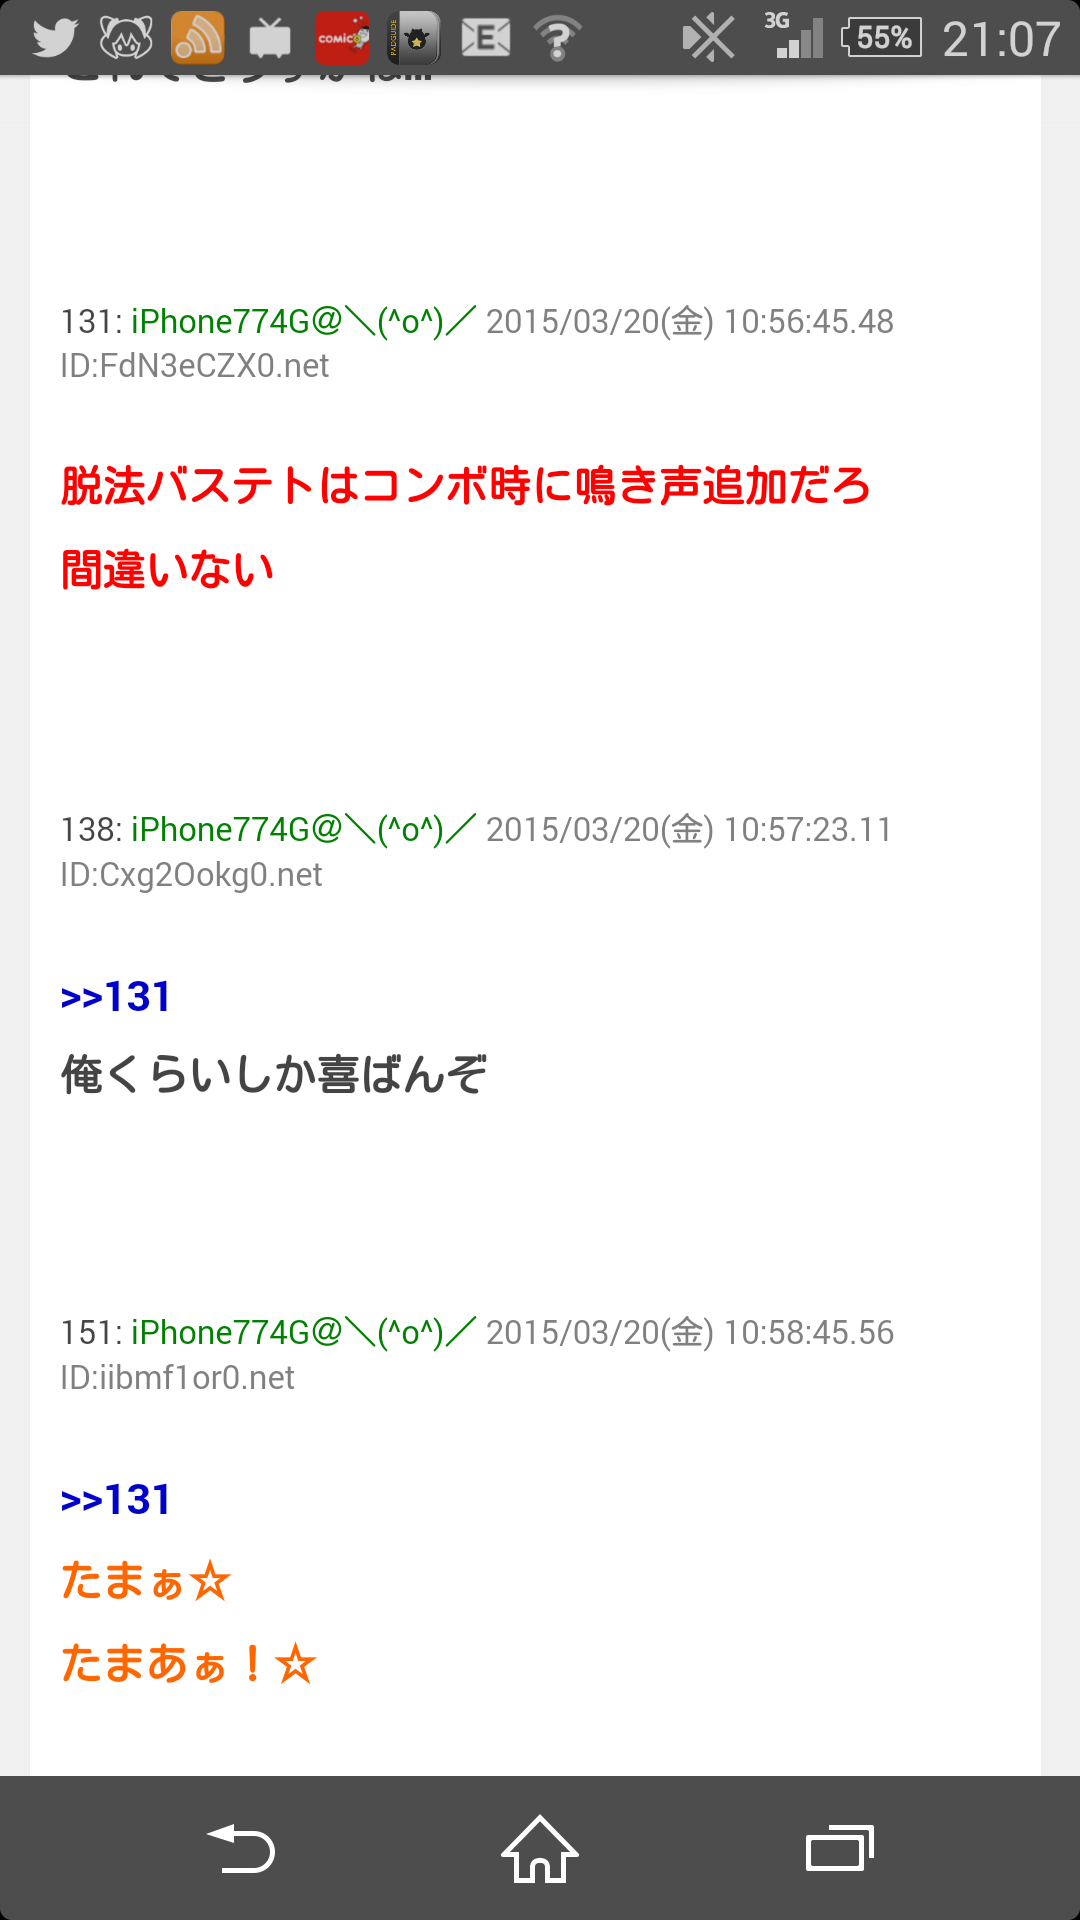 Screenshot_2015-03-22-21-07-04.png